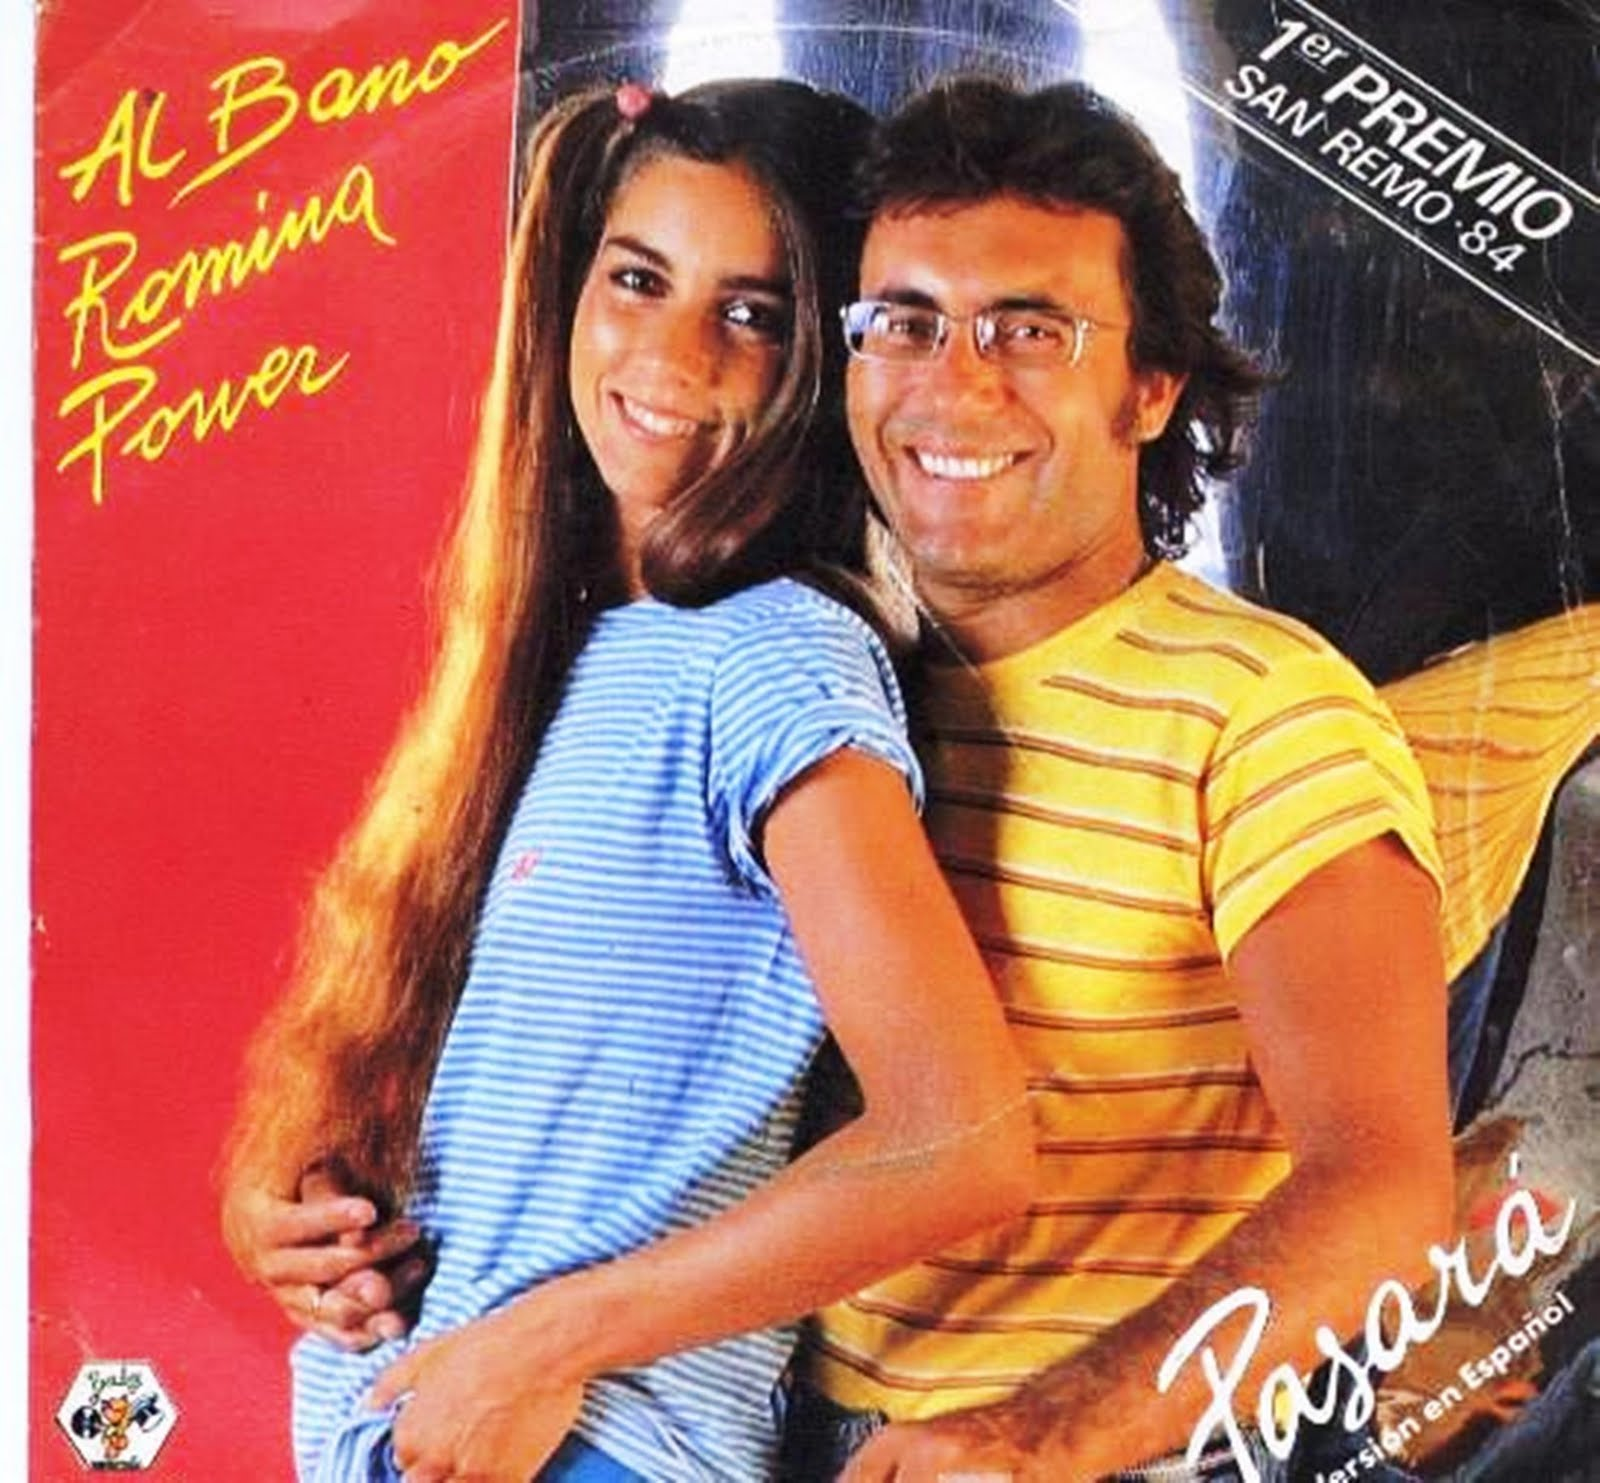 1000 images about albano e romina power on pinterest for Al bano romina power